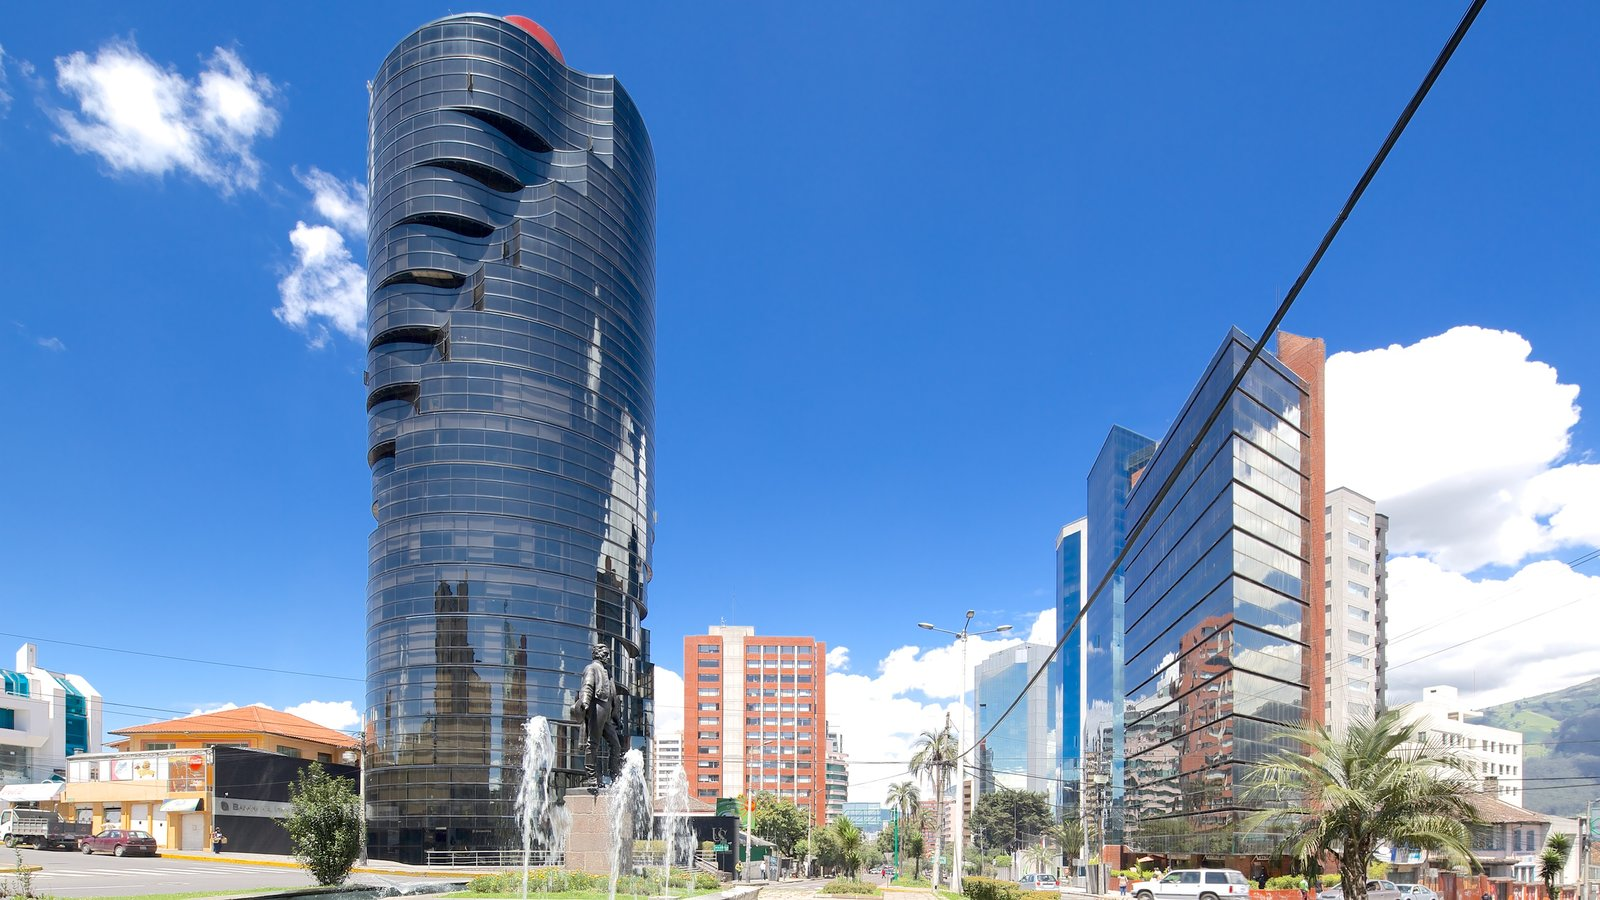 Modern architecture pictures view images of ecuador for Www architecture